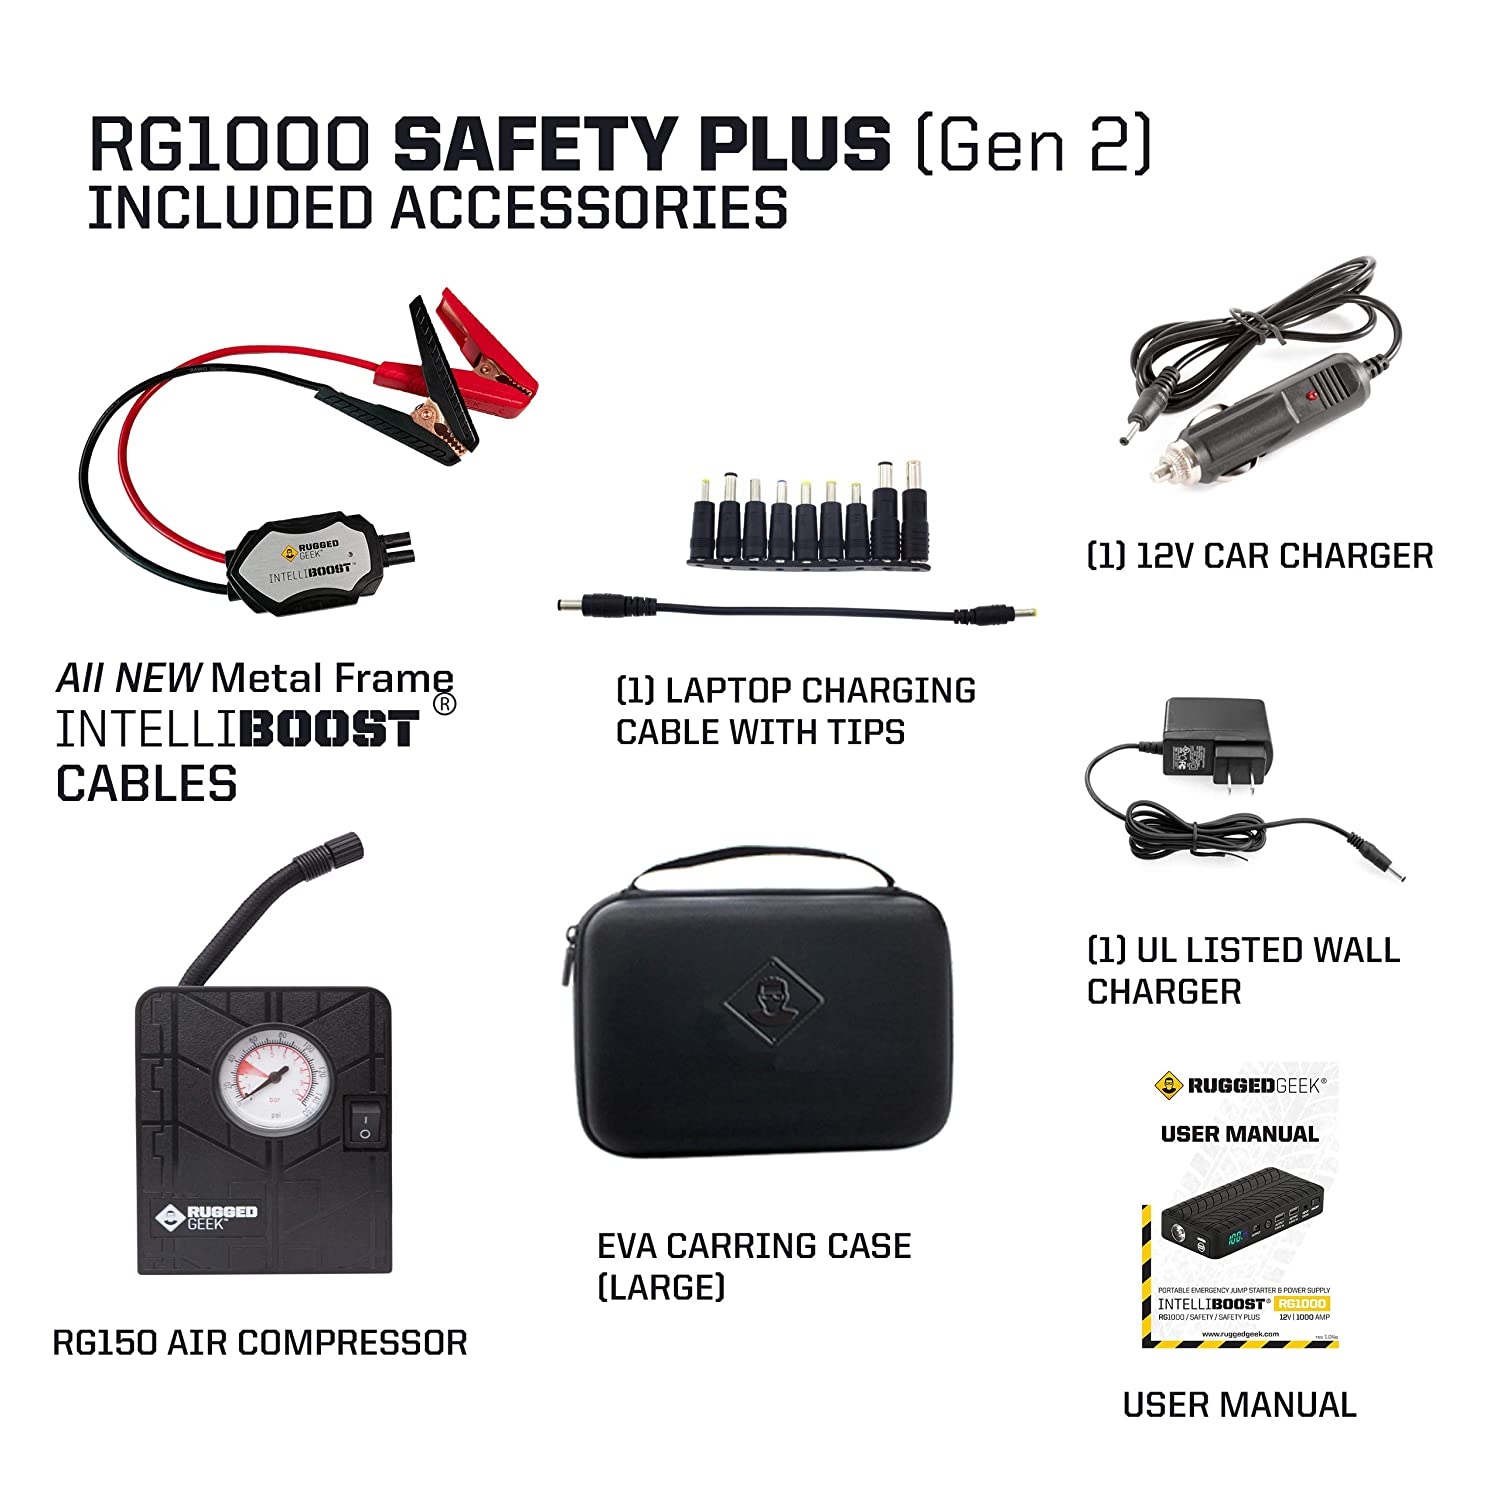 LED Flashlight NEW for 2019 INTELLIBOOST Smart Cables Rugged Geek RG1000 Safety GEN2 1000A Portable Car Jump Starter USB /& Laptop Charging Battery Booster Pack and Power Supply with LCD Display